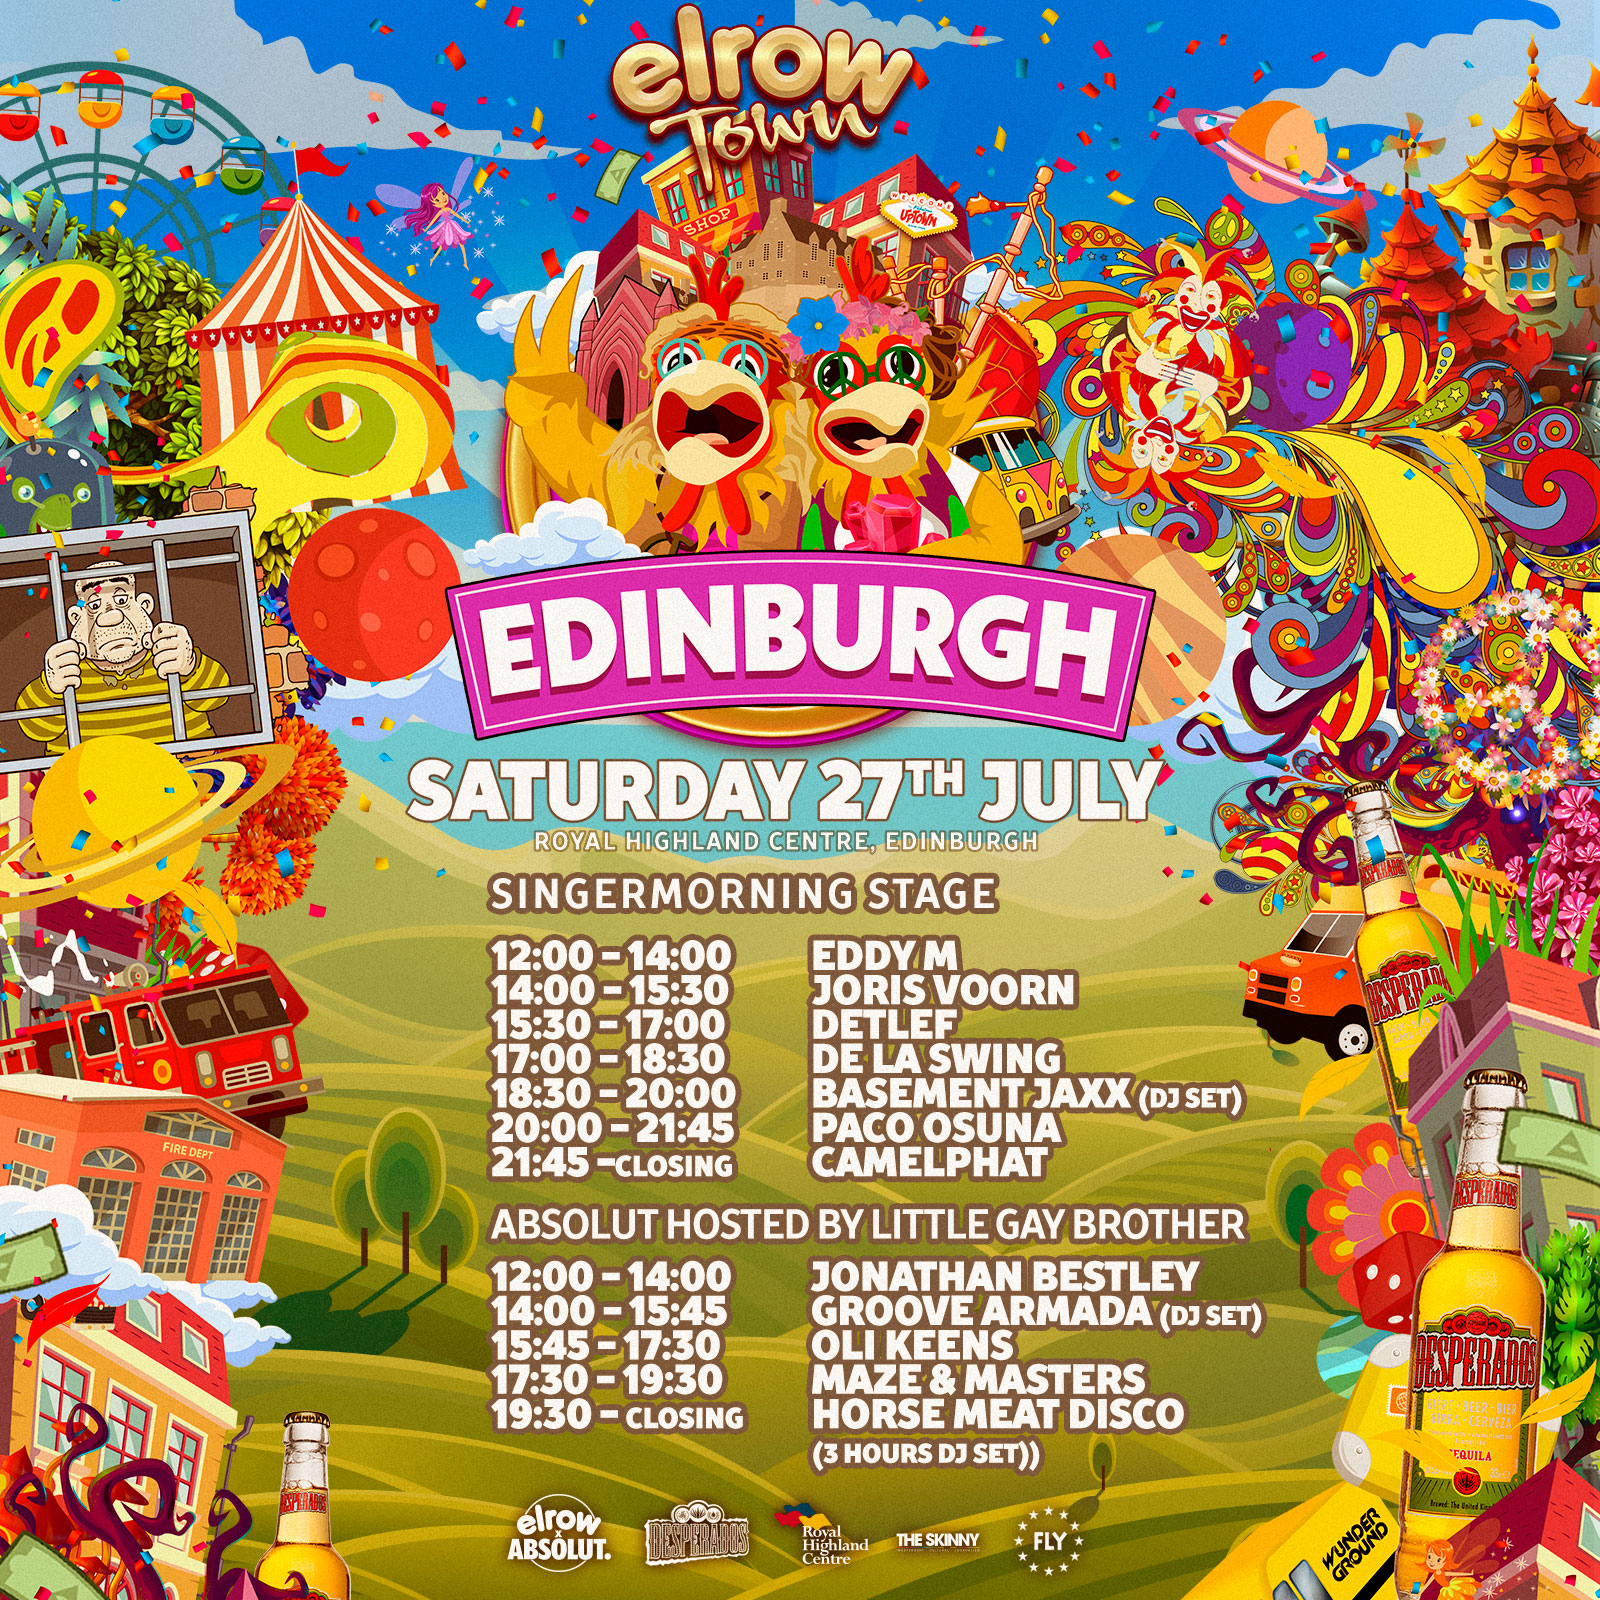 elrow town - 27th july 2019 @edinburghLITTLE GAY BROTHER HOST THE PINK CATHEDRAL FOR ELROW TOWN EDINBURGH WITH GROOVE ARMADA, HORSE MEAT DISCO, MAZE & MASTERS, OLI KEENS AND JONATHAN BESTLEY